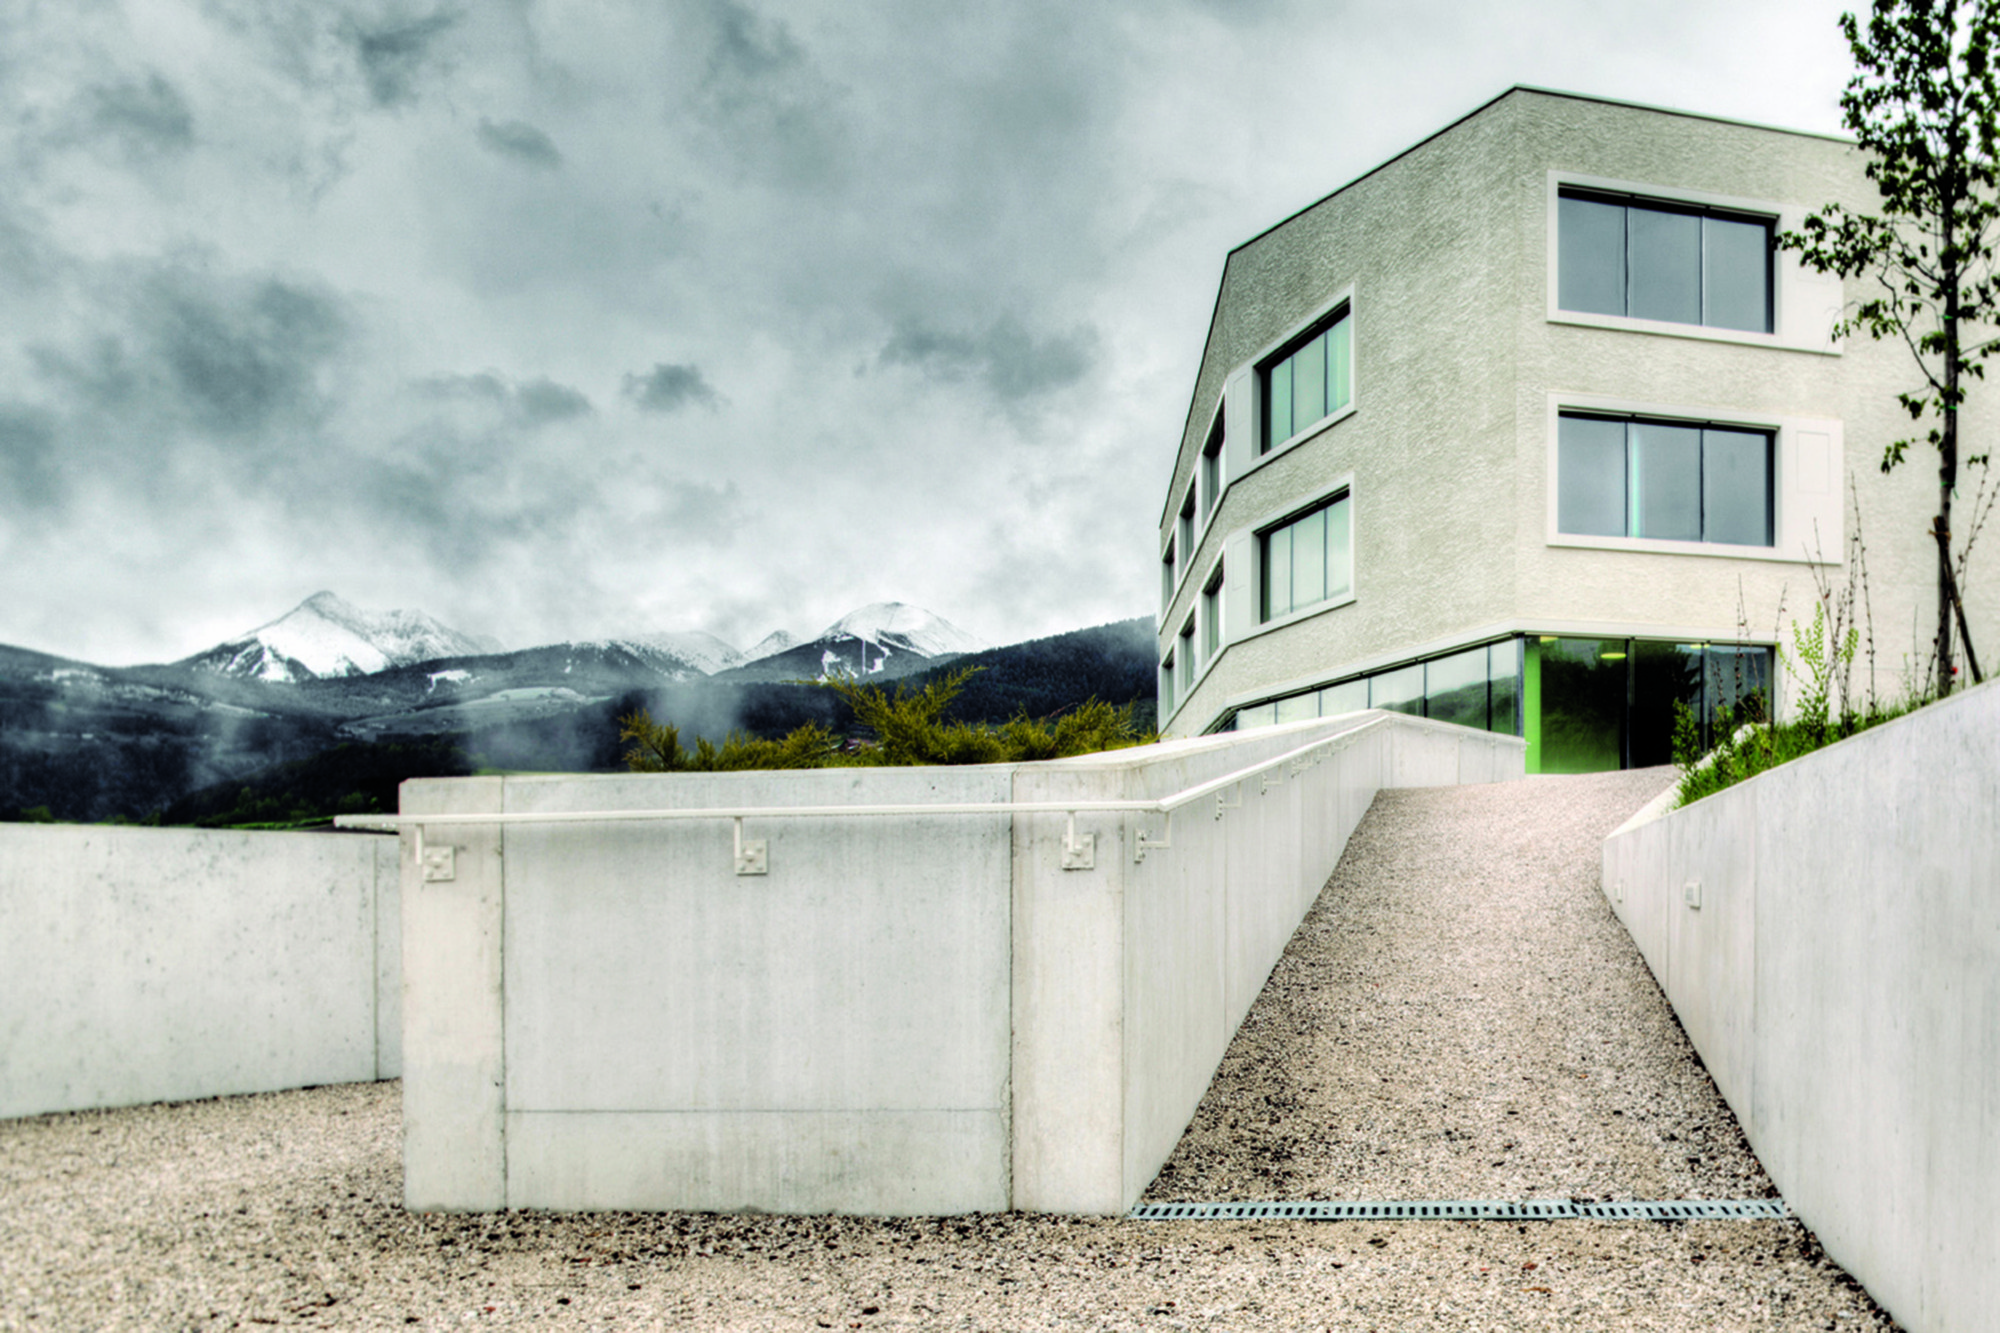 Rodeneck School  / pedevilla architekten, © Gustav Willeit